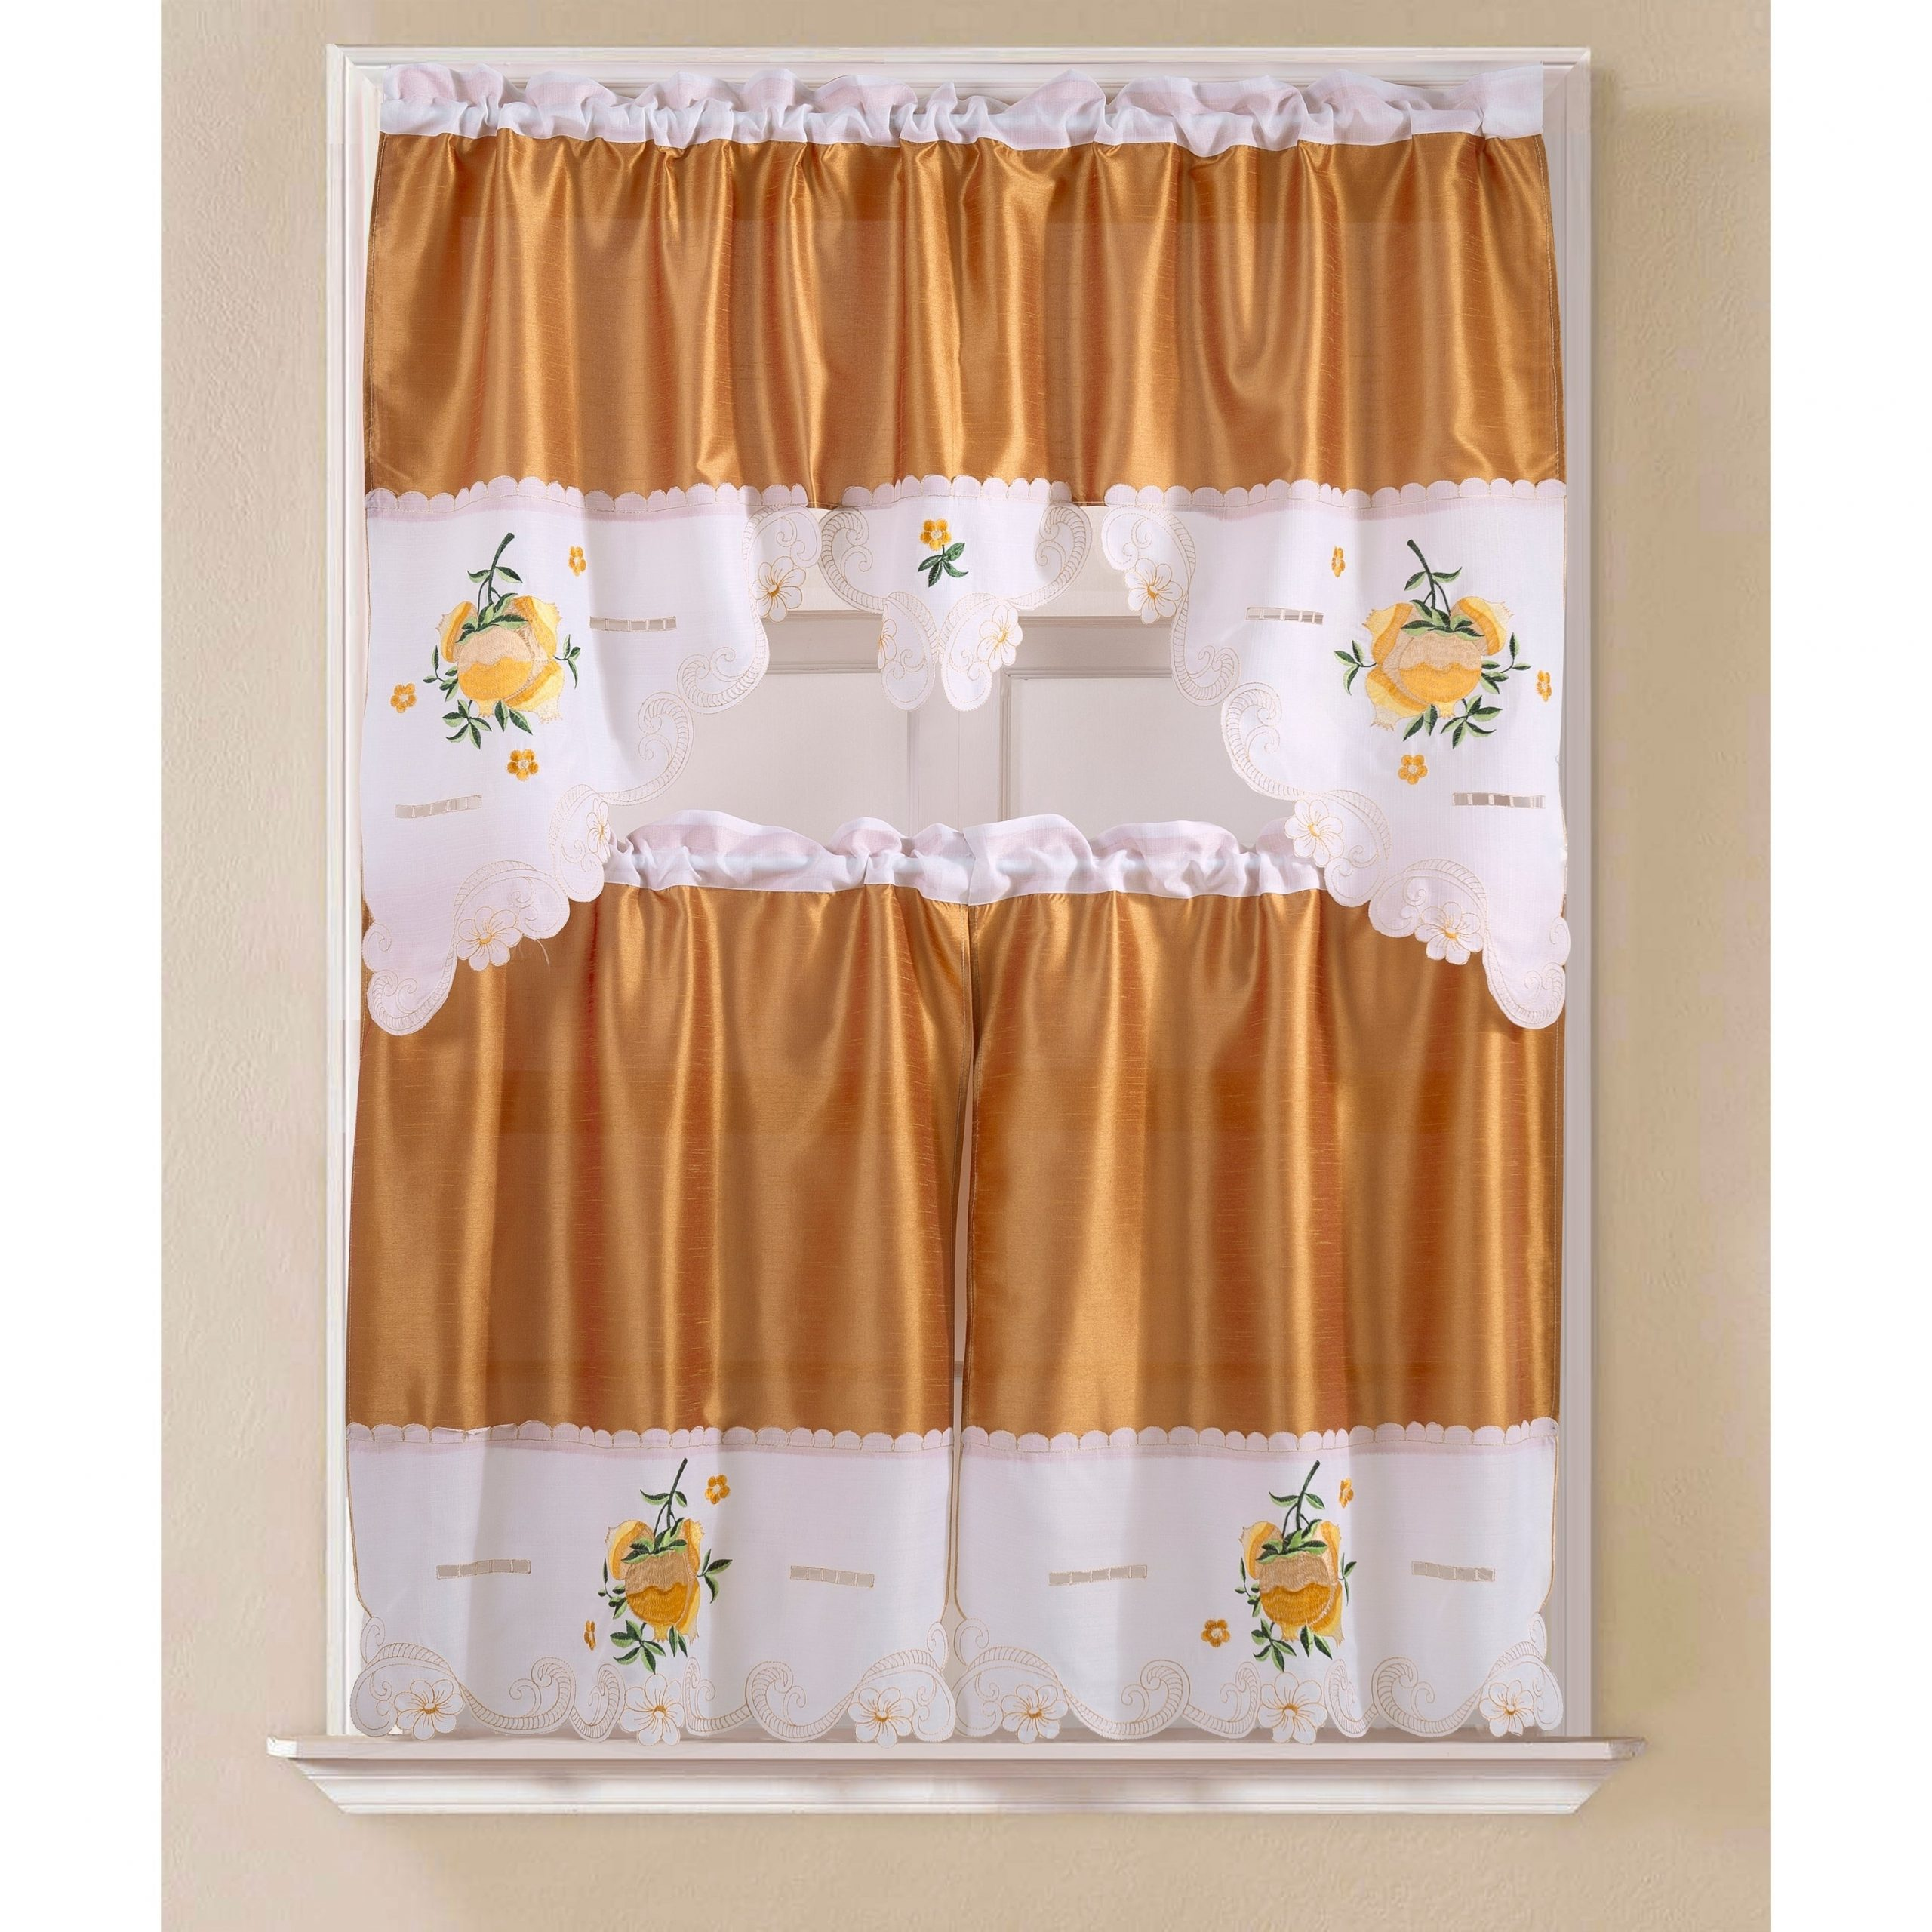 Most Popular Faux Silk 3 Piece Kitchen Curtain Sets Pertaining To Porch & Den Eastview Faux Silk 3 Piece Kitchen Curtain Set (Gallery 7 of 20)